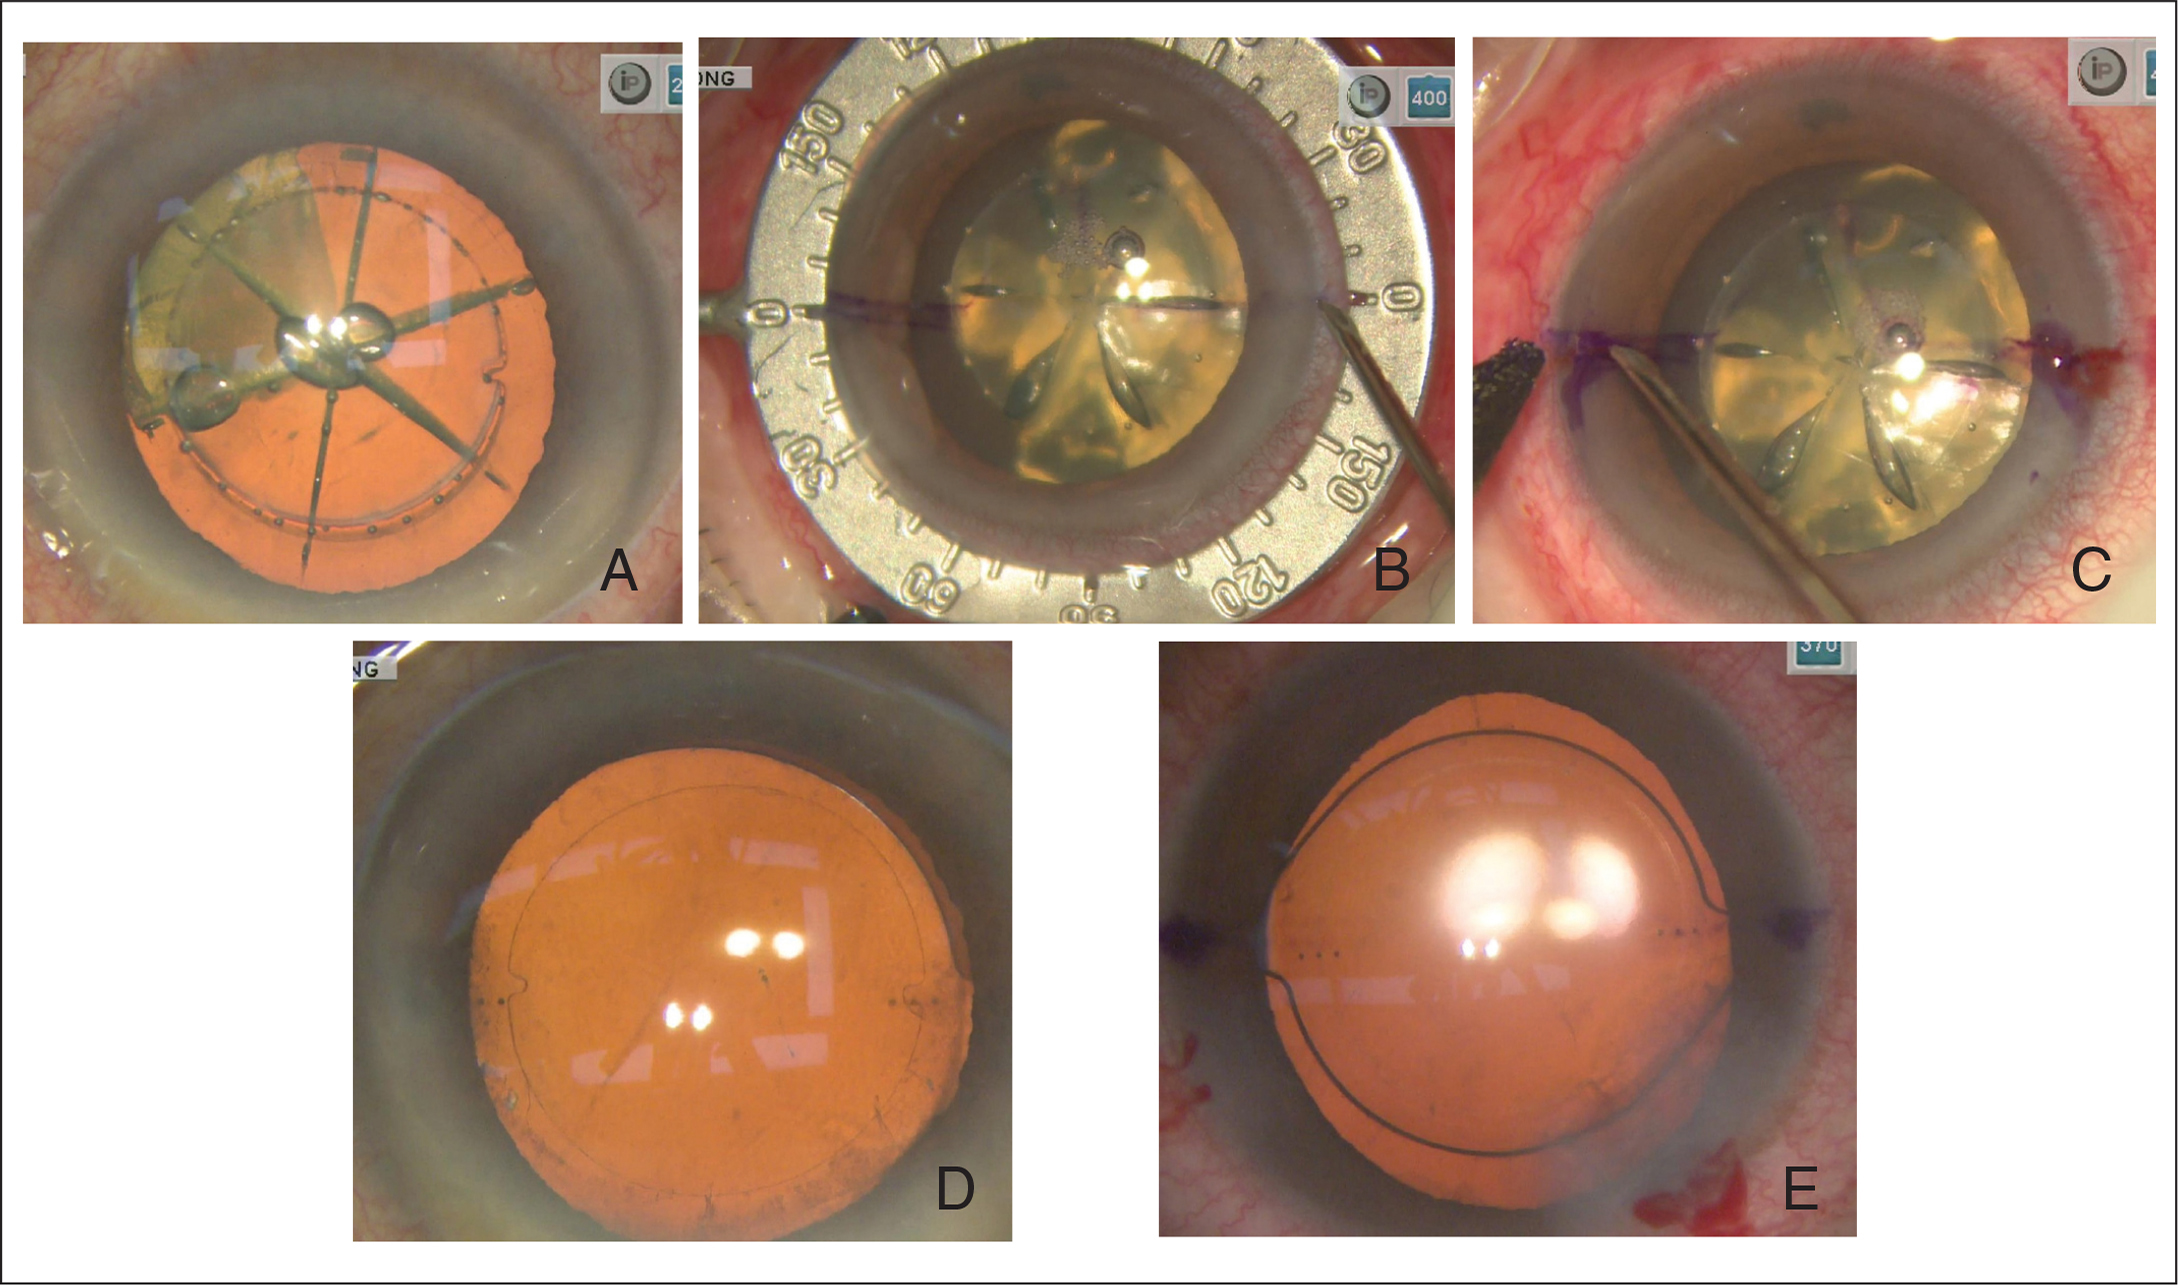 (A) The marks are two small tabs at the capsulotomy edge with a height of 300 µm and an arc length of 10° at their base. (B) With the guidance of the previously marked reference marking, axis marking is performed using a Mendez ring. (C) The corneal marker was made by a 25-gauge needle with a tip stained with a sterile blue ink. (E) For the femtosecond laser capsular marking group, the IOL was aligned to the target axis according to the two small tabs at the capsulotomy edge. (F) For the manual marking group, the IOL was aligned to the target axis according to the corneal marker.